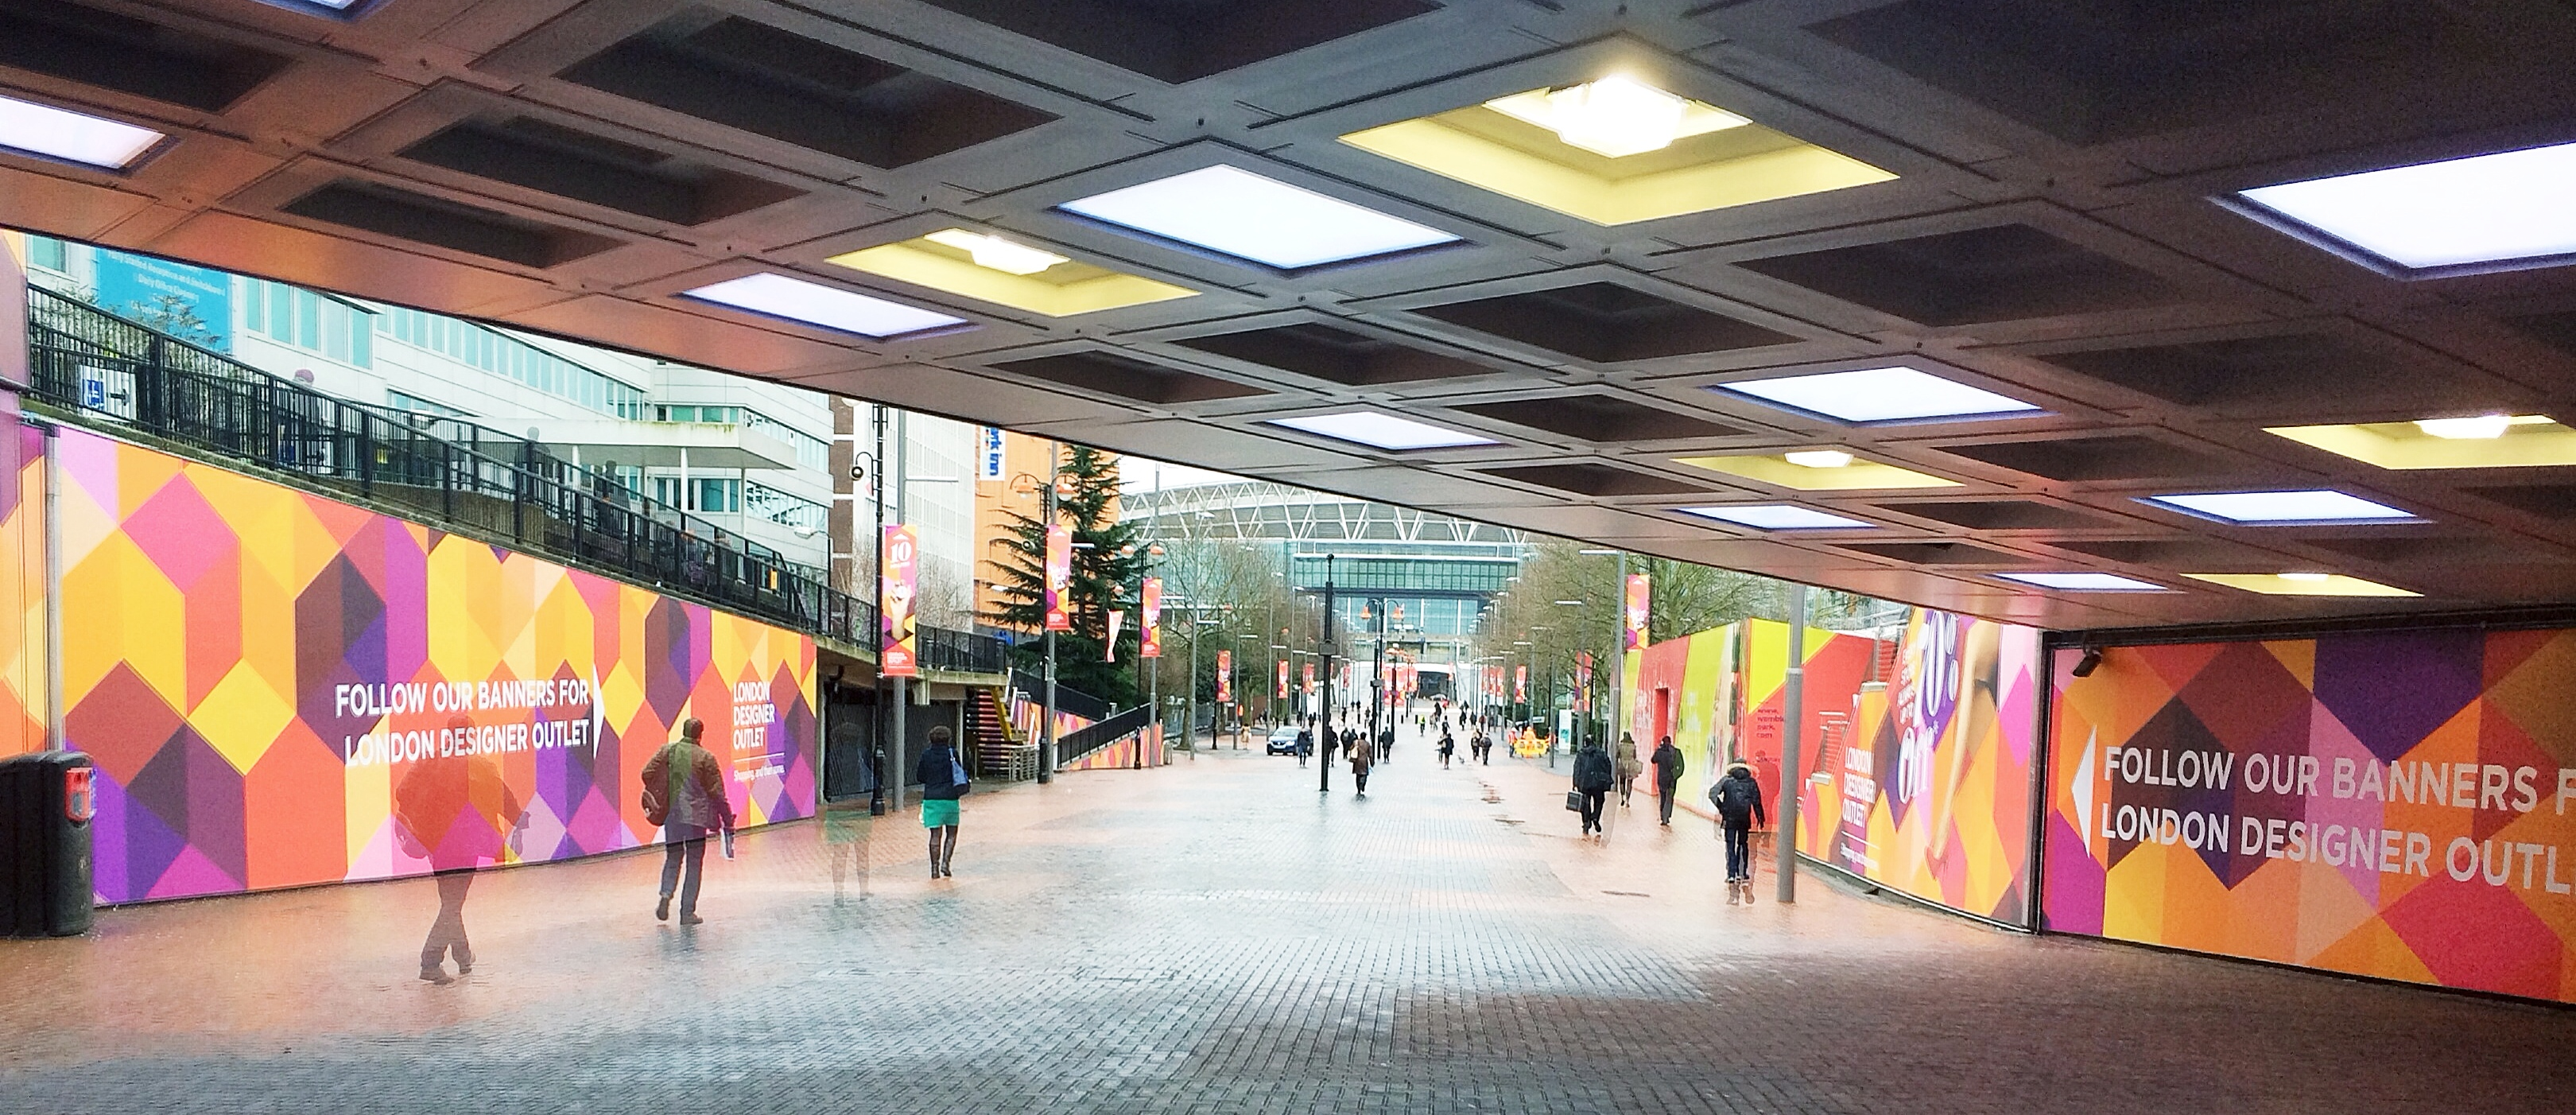 Bargain hunting at london designer outlet for Outlet design